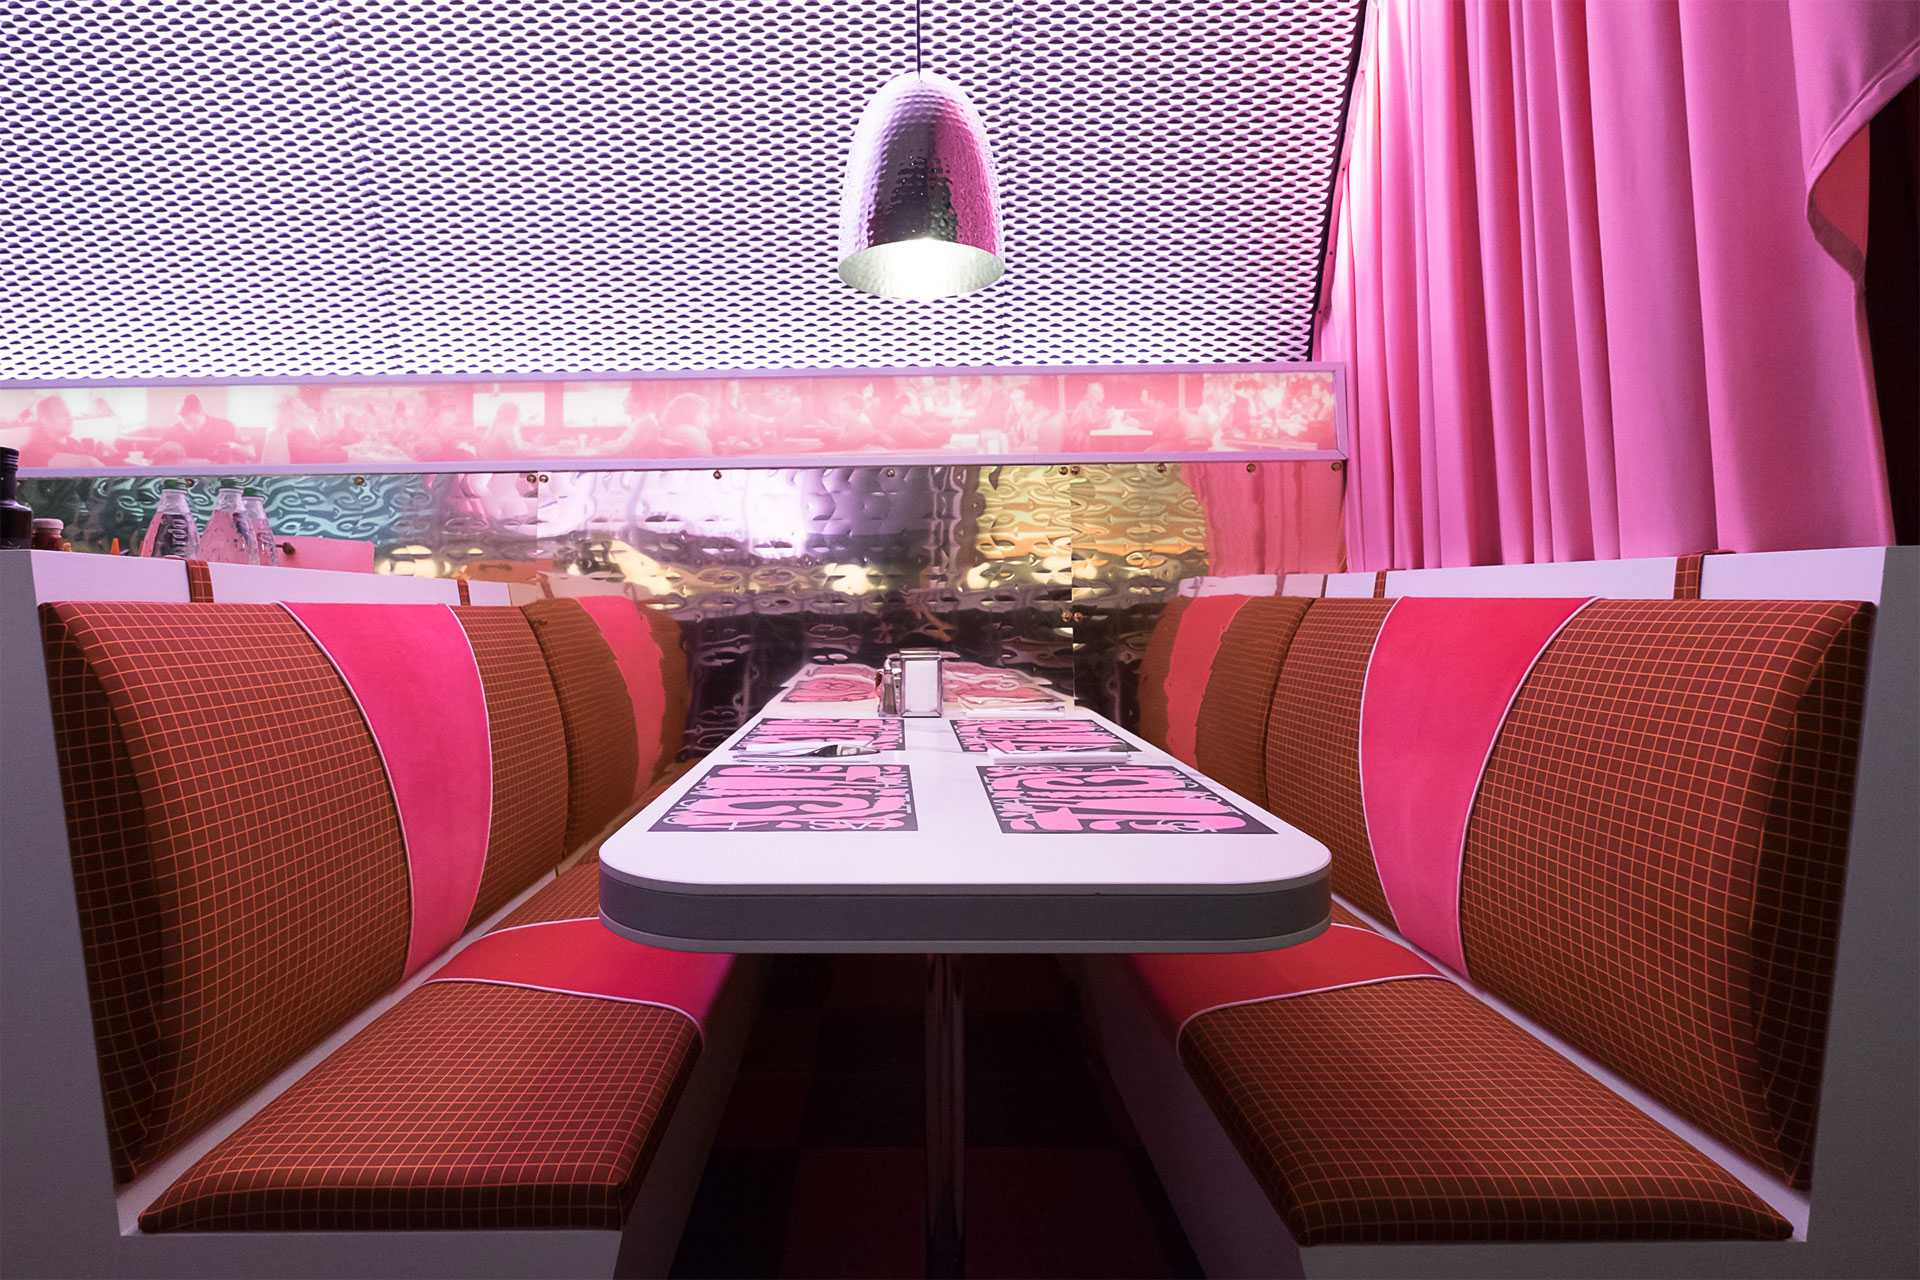 The Diner  - 28 05 36